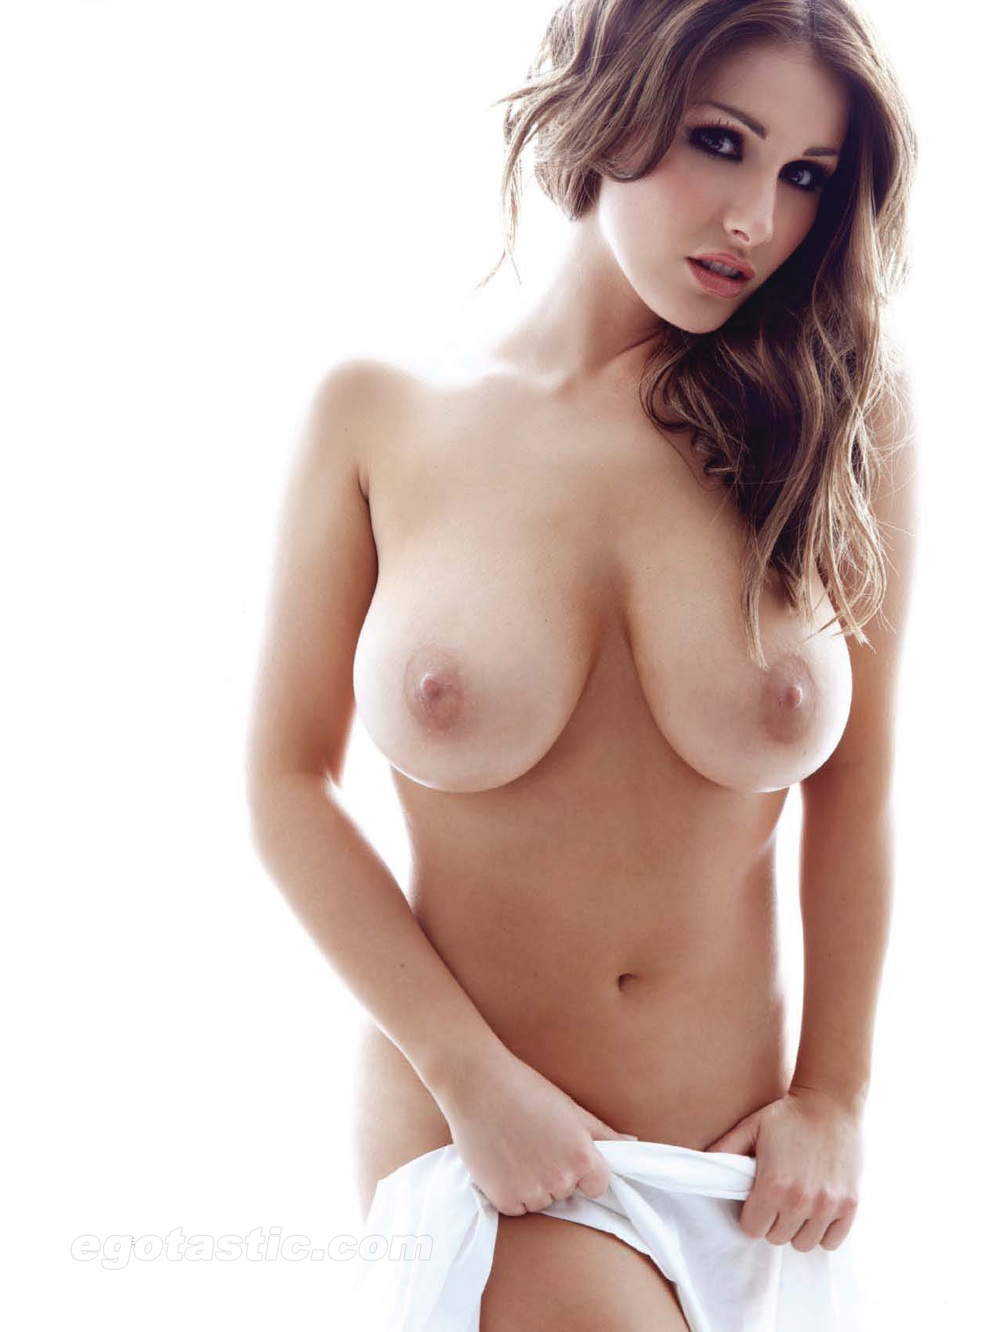 32 Sexy Pics Of Lucy Pinders Amazing, Natural 32F Breasts -1032